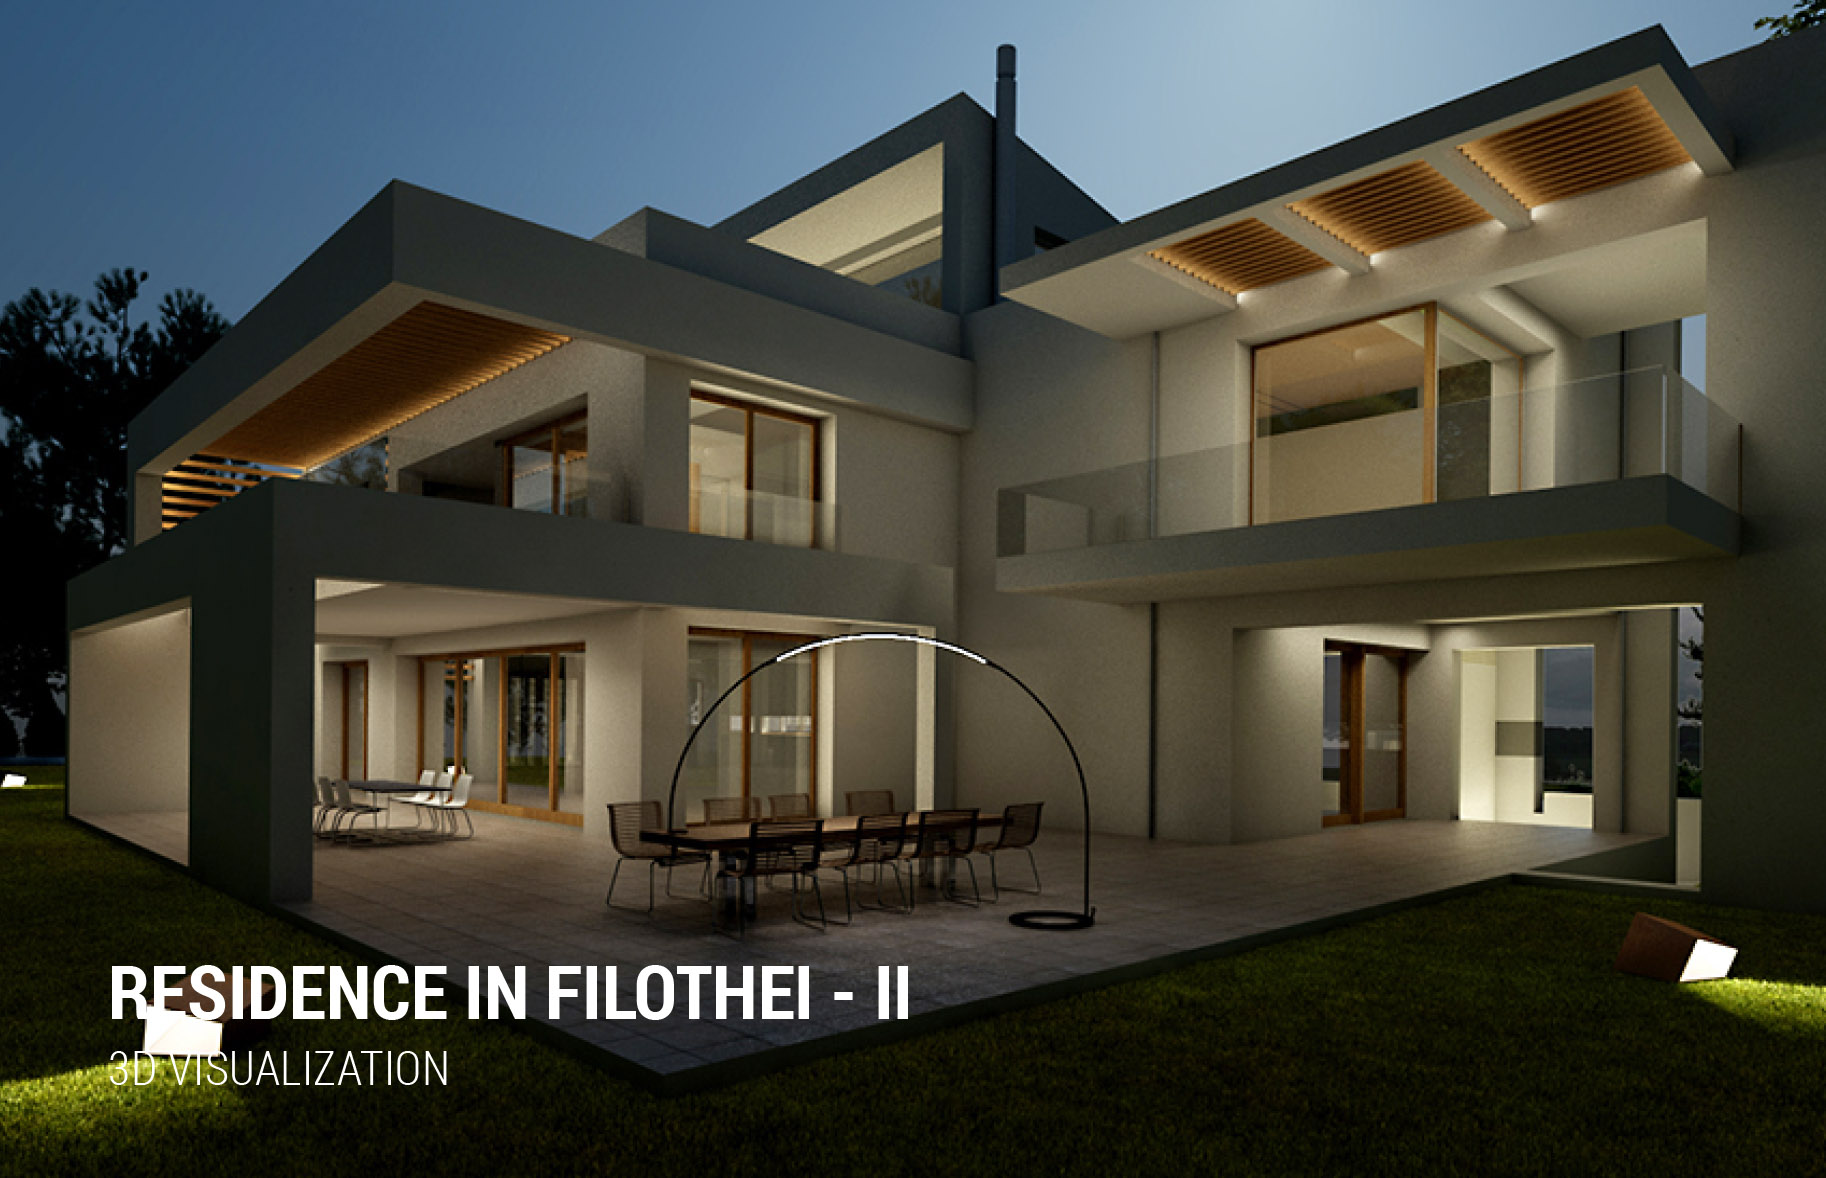 Schema Dimitra Chrona designer, creative director, architectural, 3D visualization, 3D Rendering, branding websites, digital, graphic design, interior design, real estate, luxury property, staging, museum, virtual, art, brochures, exhibitions, logotype, logo, Canada Quebec Montreal Athens Greece schema design filothei residence ii large over.jpg